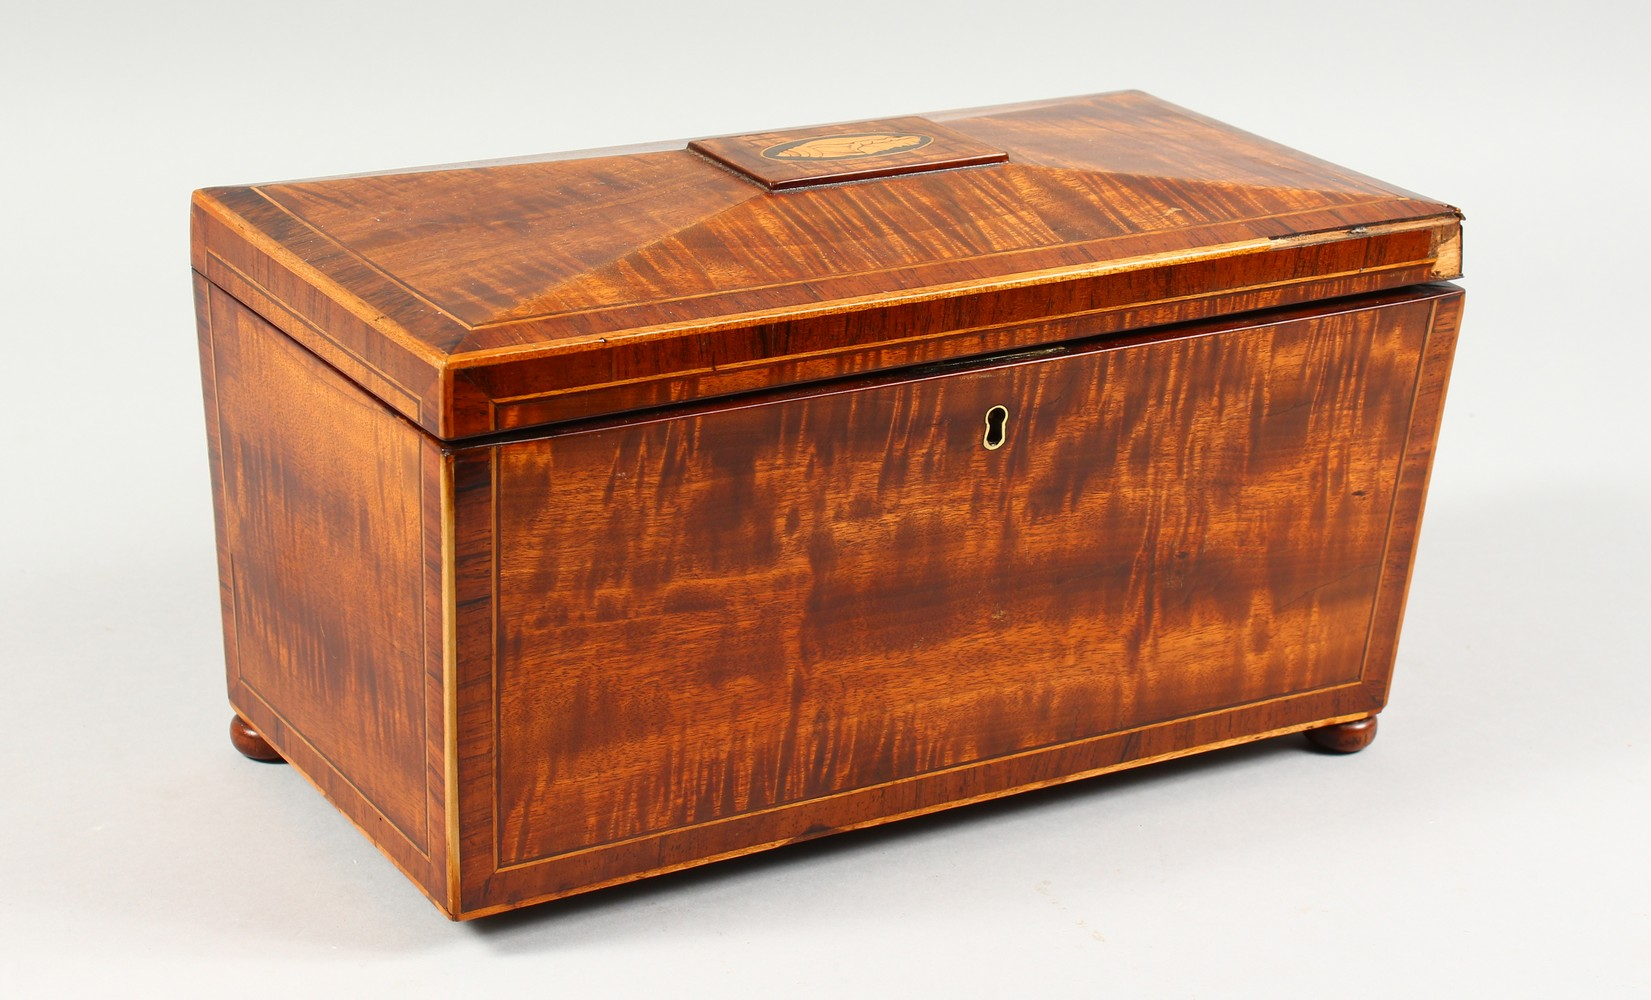 Lot 1397 - A 19TH CENTURY SARCOPHAGUS SHAPE TEA CADDY. 12ins wide.